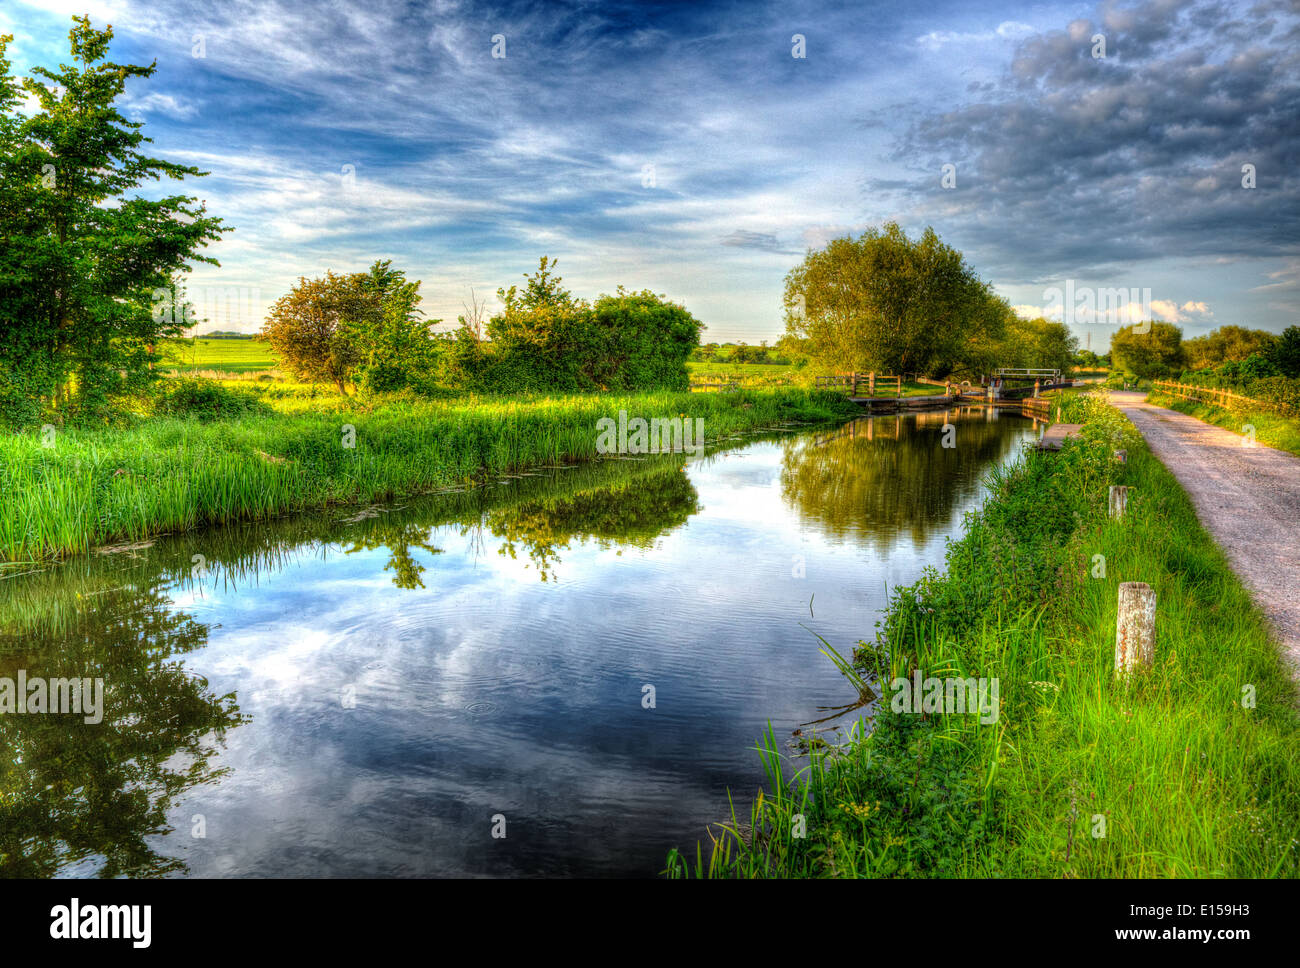 English countryside scene with canal and lock gates in colourful bright and vivid HDR Stock Photo